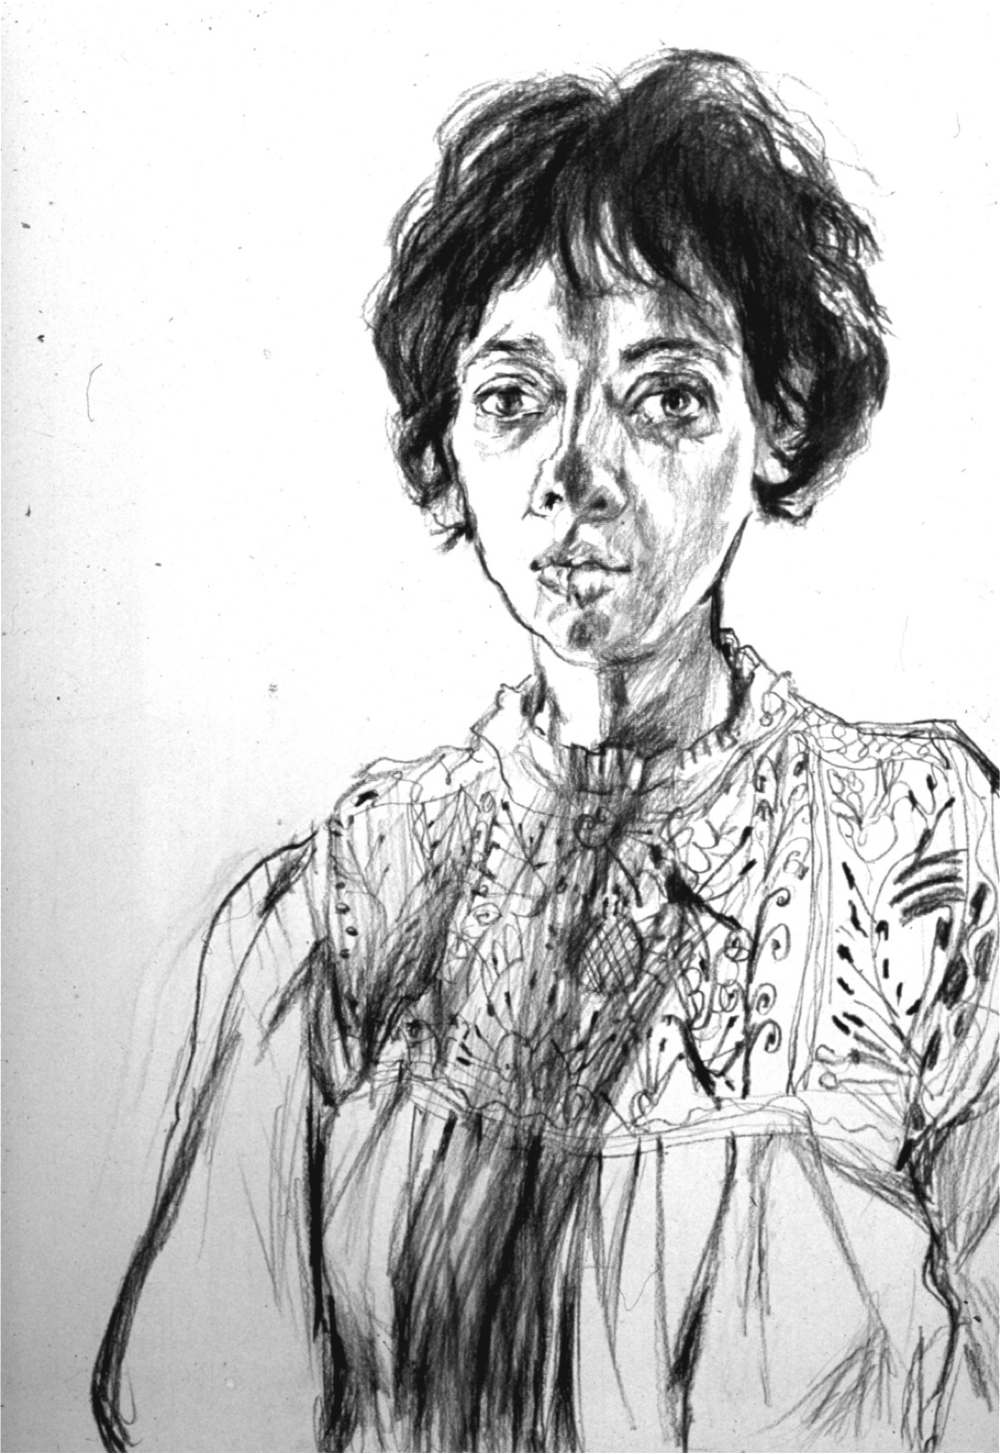 Self Portrait in a Peasant Blouse